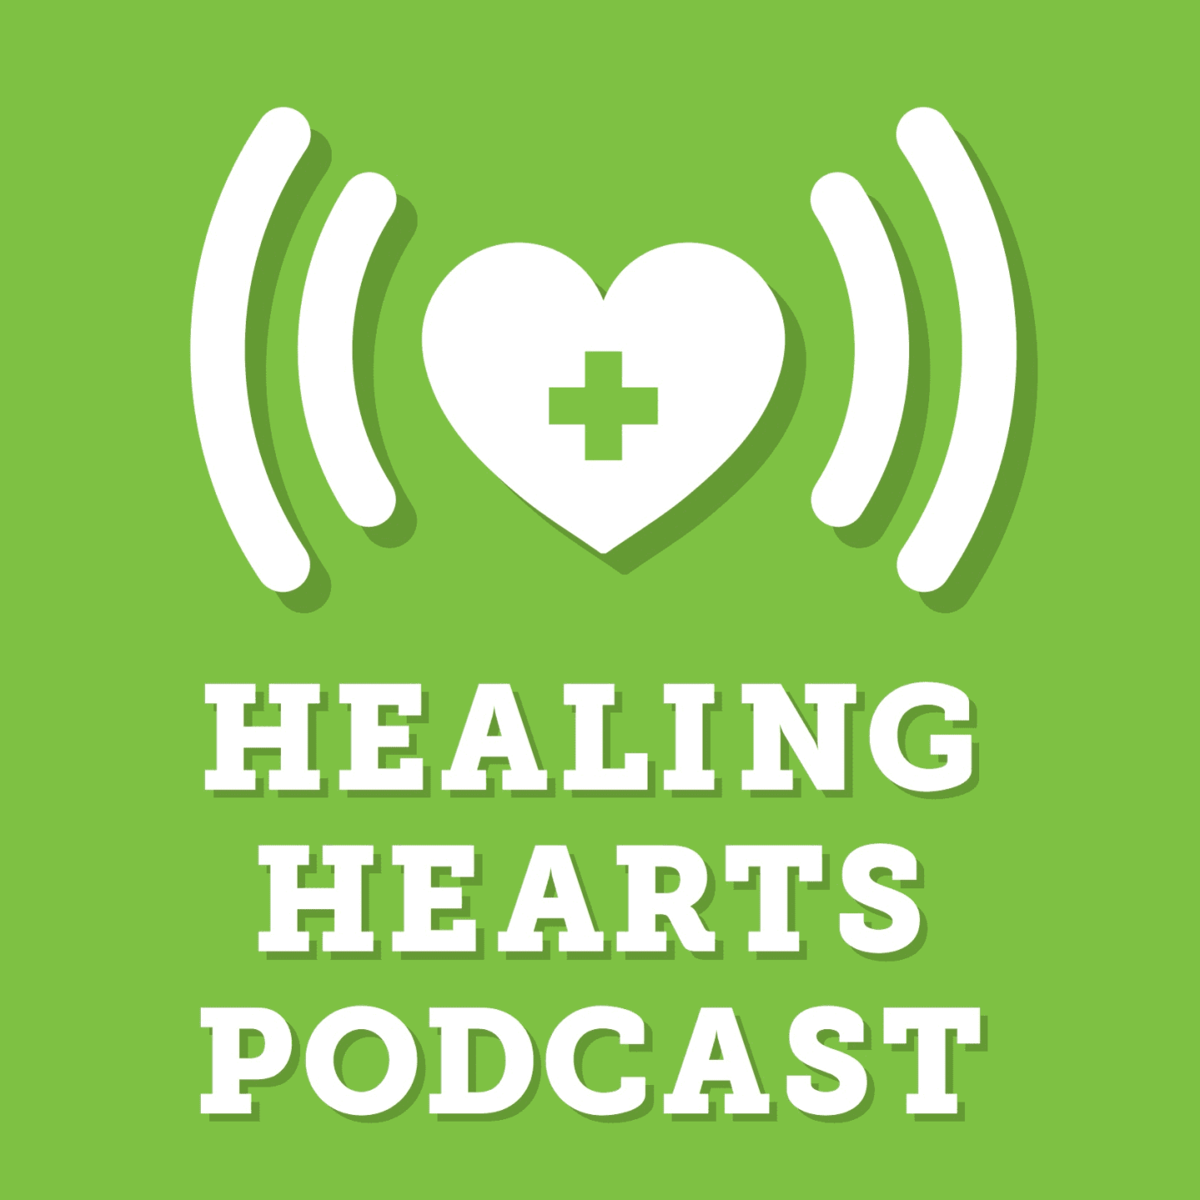 THC Healing Hearts Podcast LOGO6.png